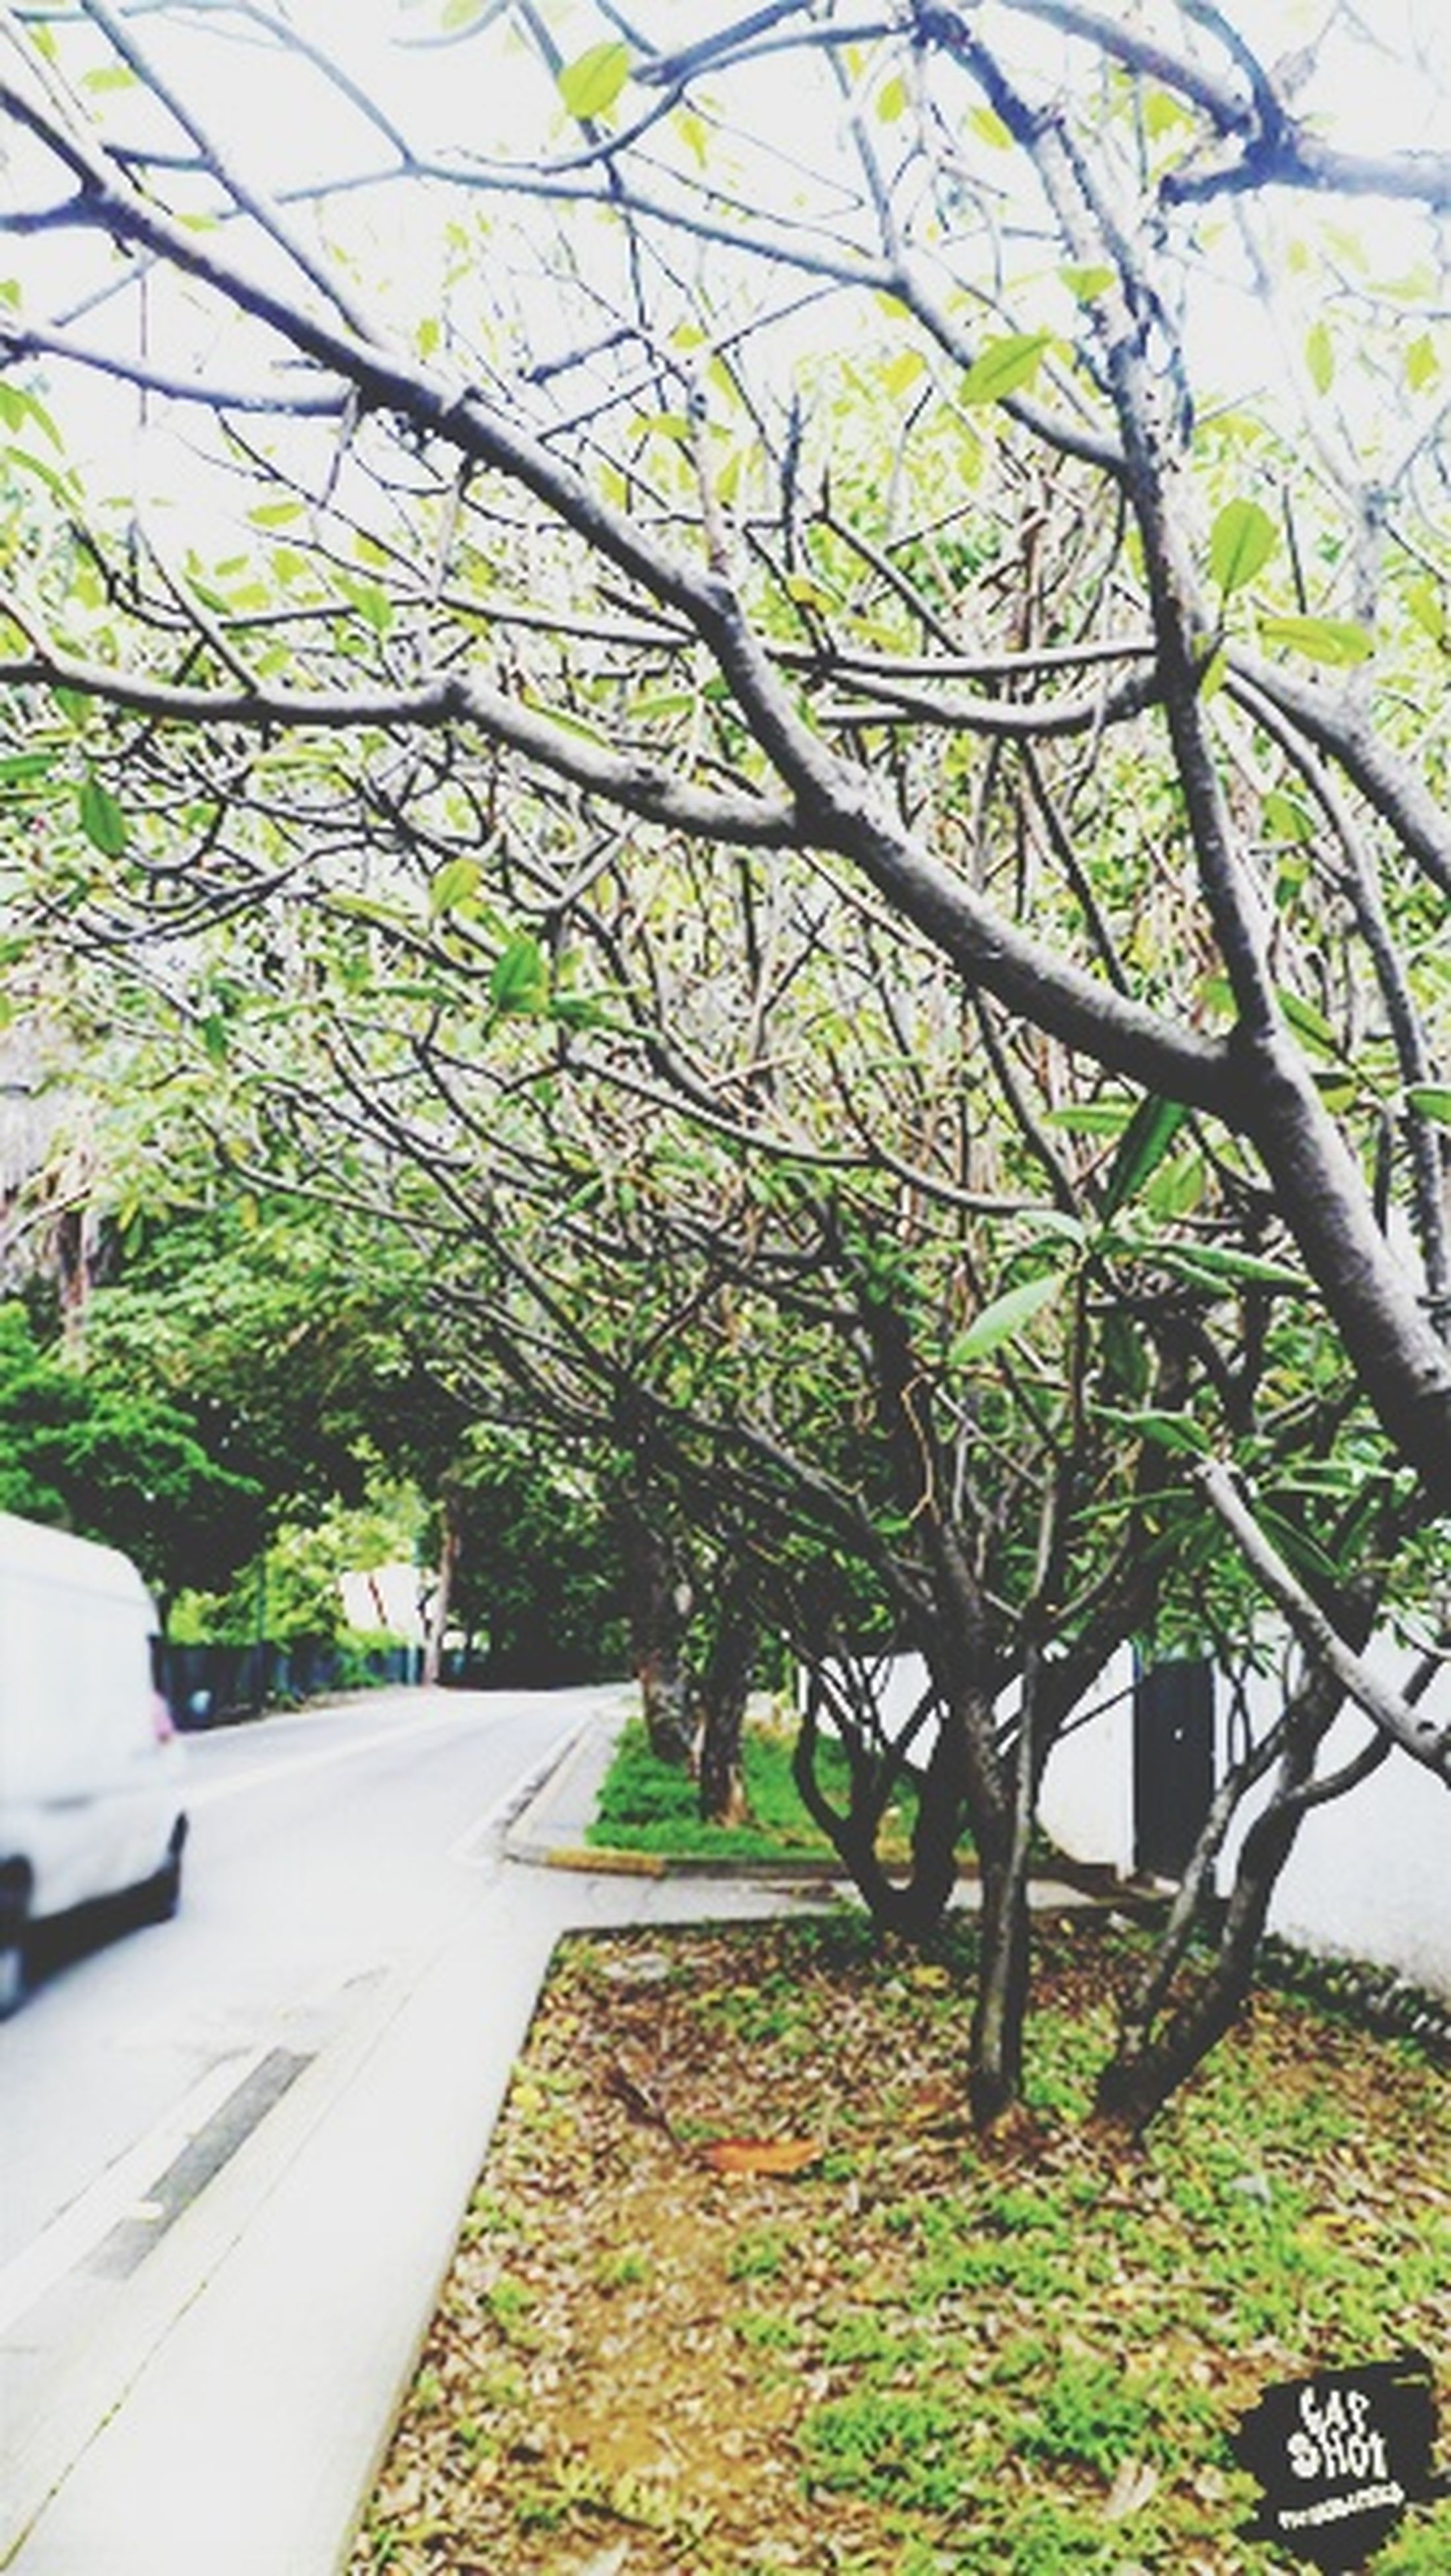 tree, growth, green color, branch, nature, sunlight, day, plant, built structure, leaf, outdoors, transportation, building exterior, tree trunk, road, architecture, no people, tranquility, street, green